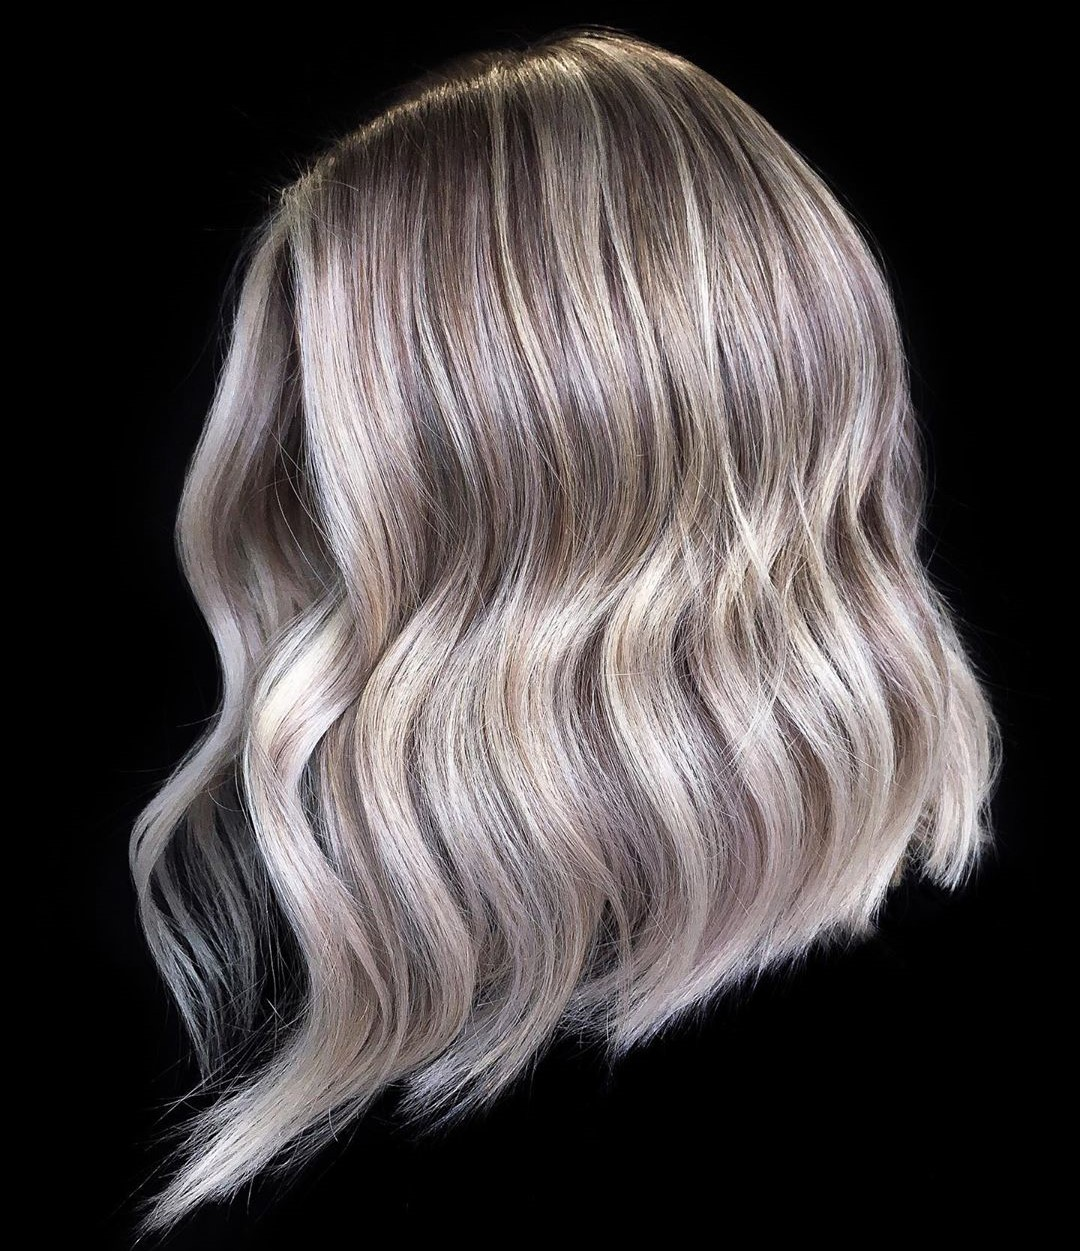 Dark Blonde Hairstyle with Silver Balayage